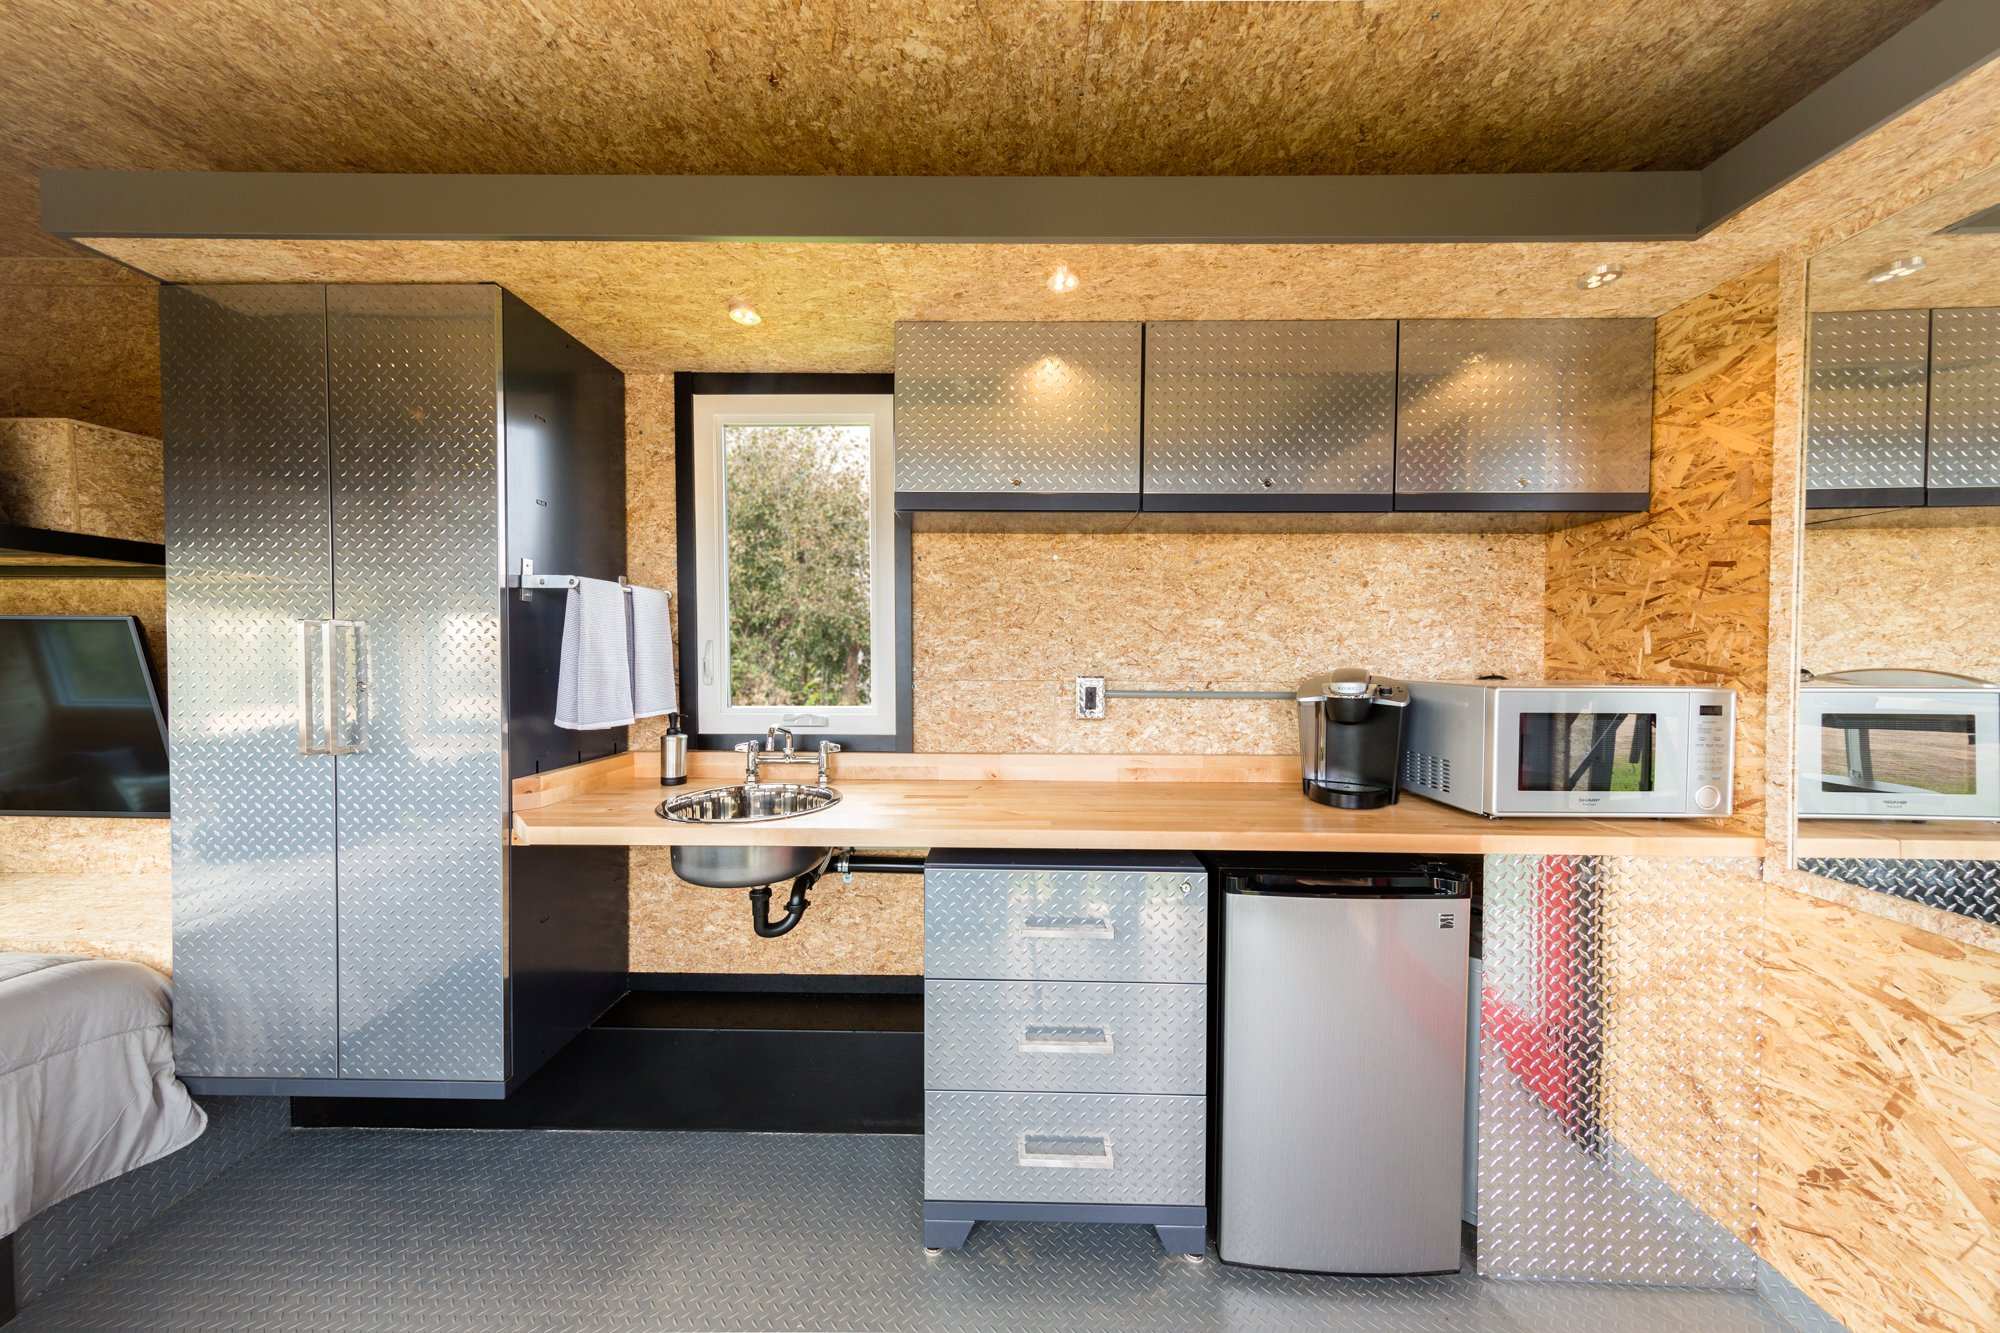 escape sport the ultimate man cave on wheels diamond kitchen cabinets ESCAPE Sport kitchen